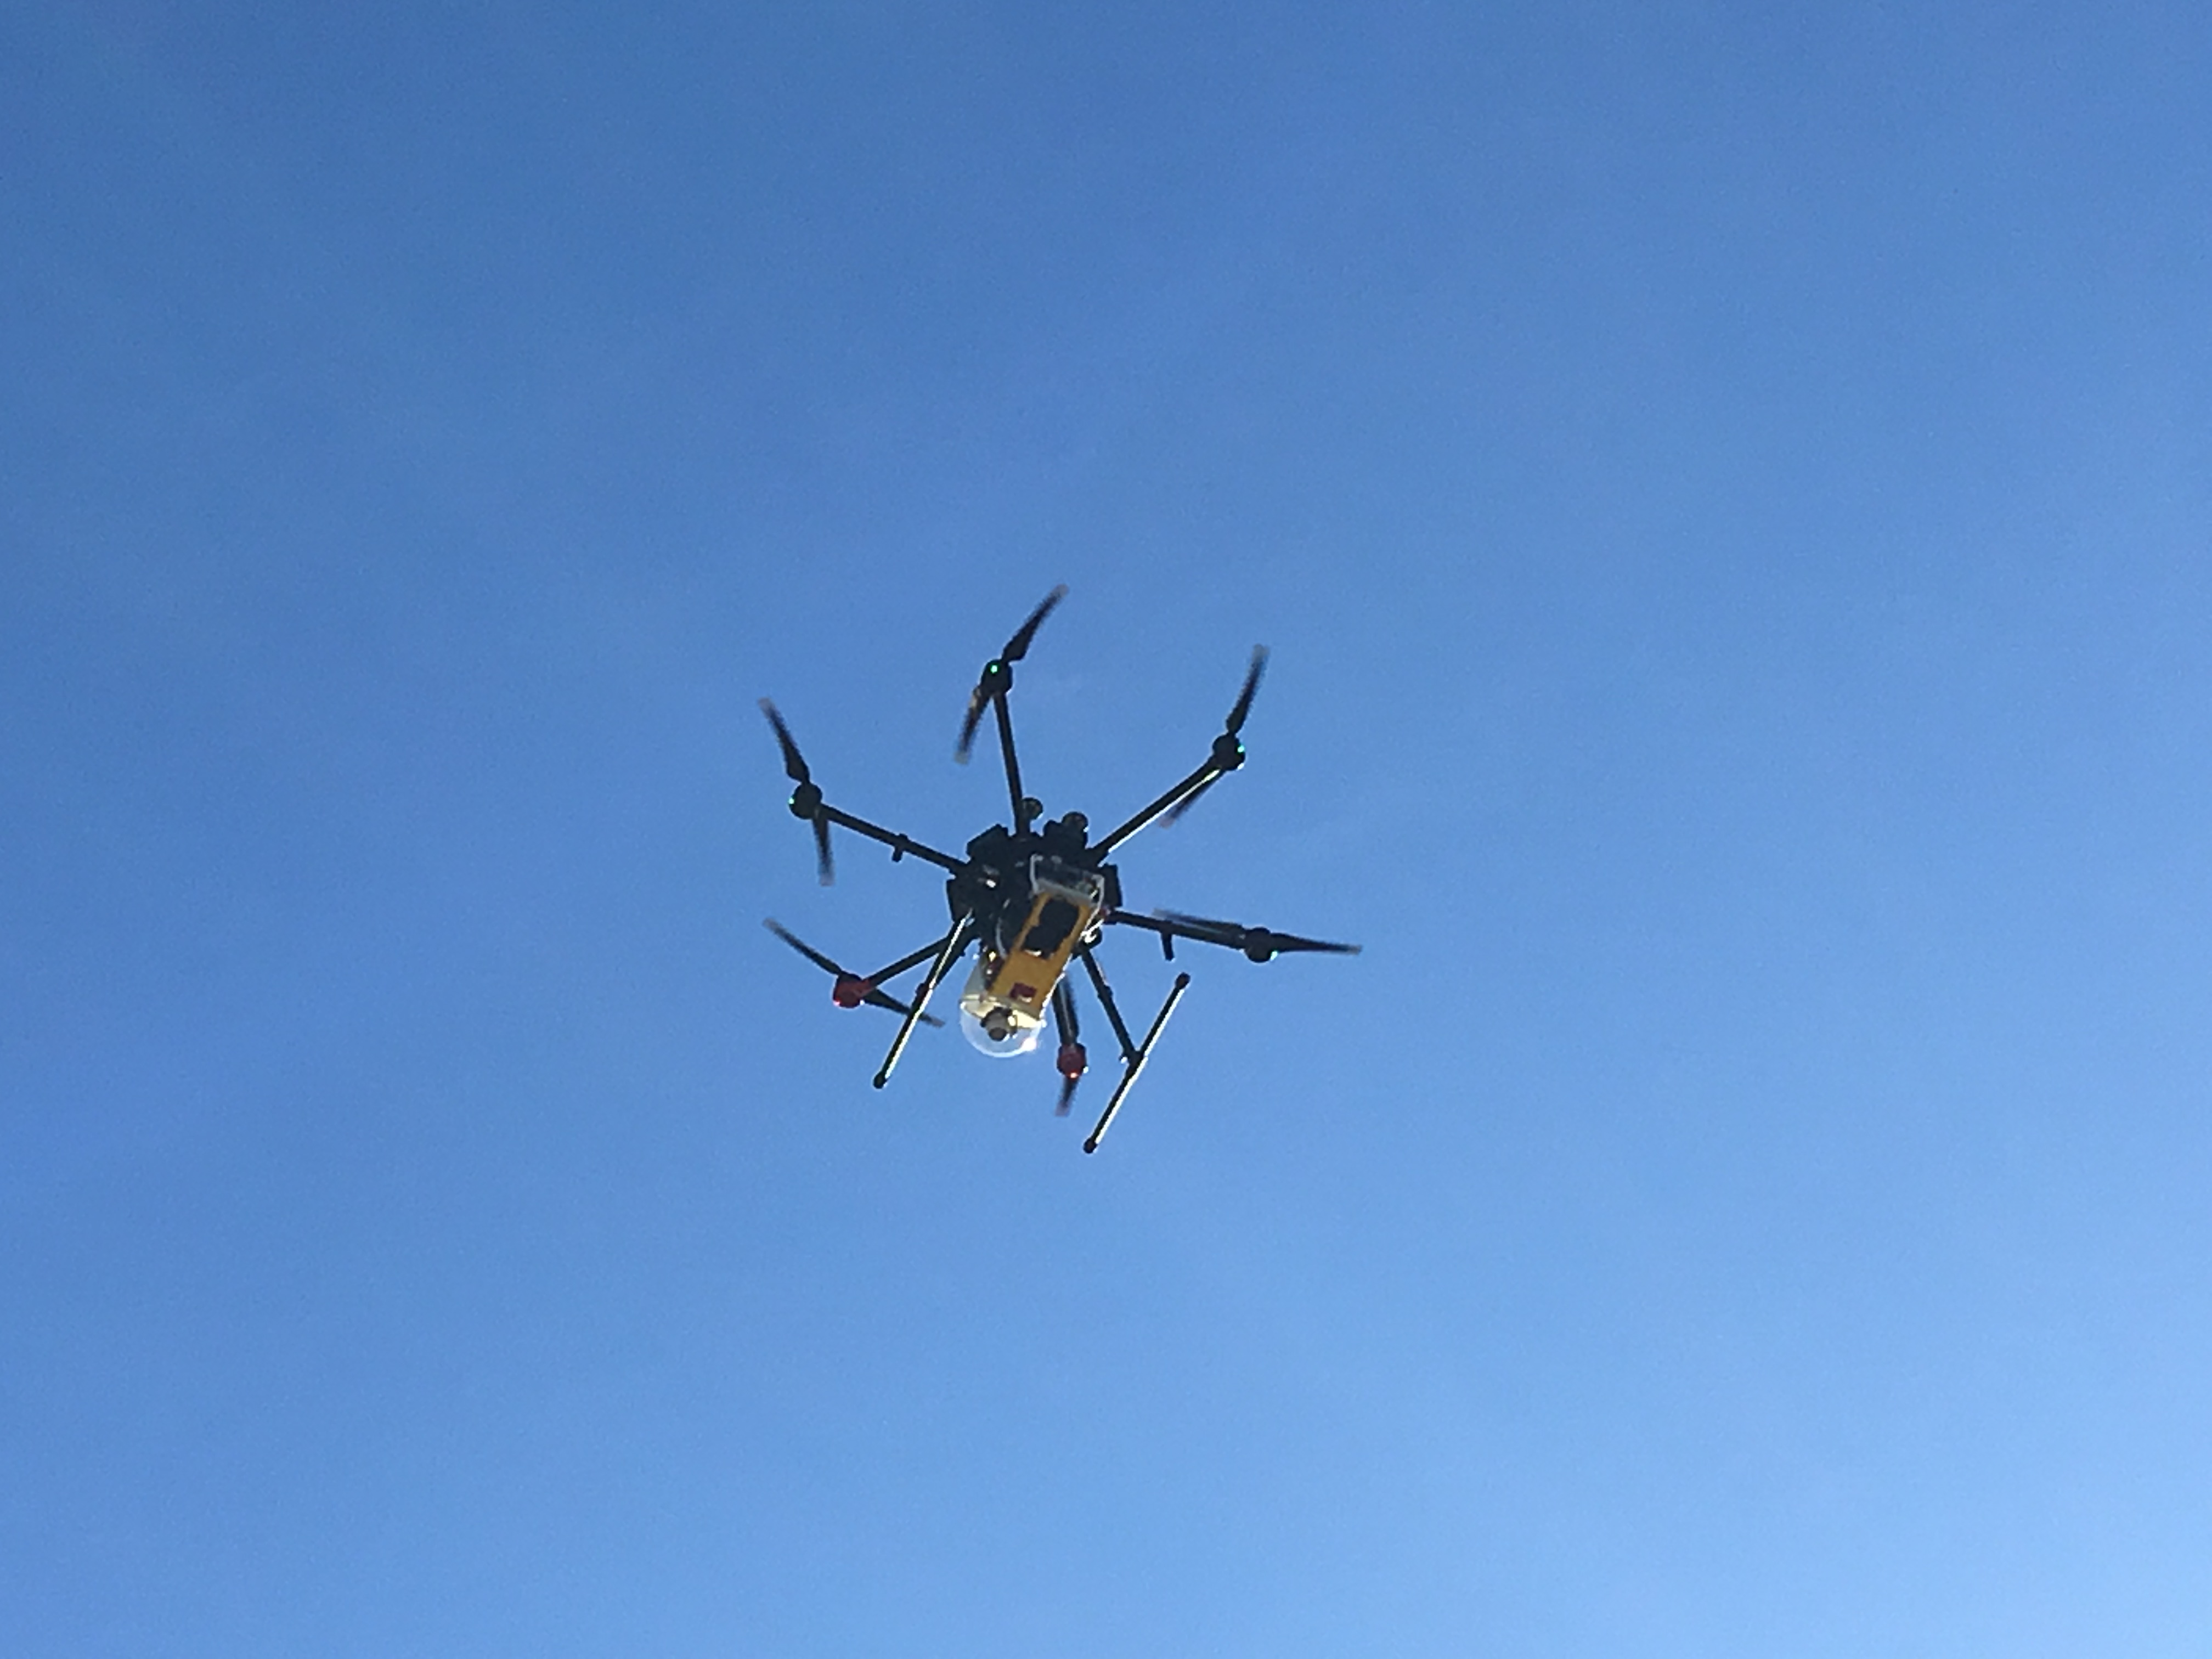 Test flight at the Biodiversity Reserve for hexacopter and sensor package.